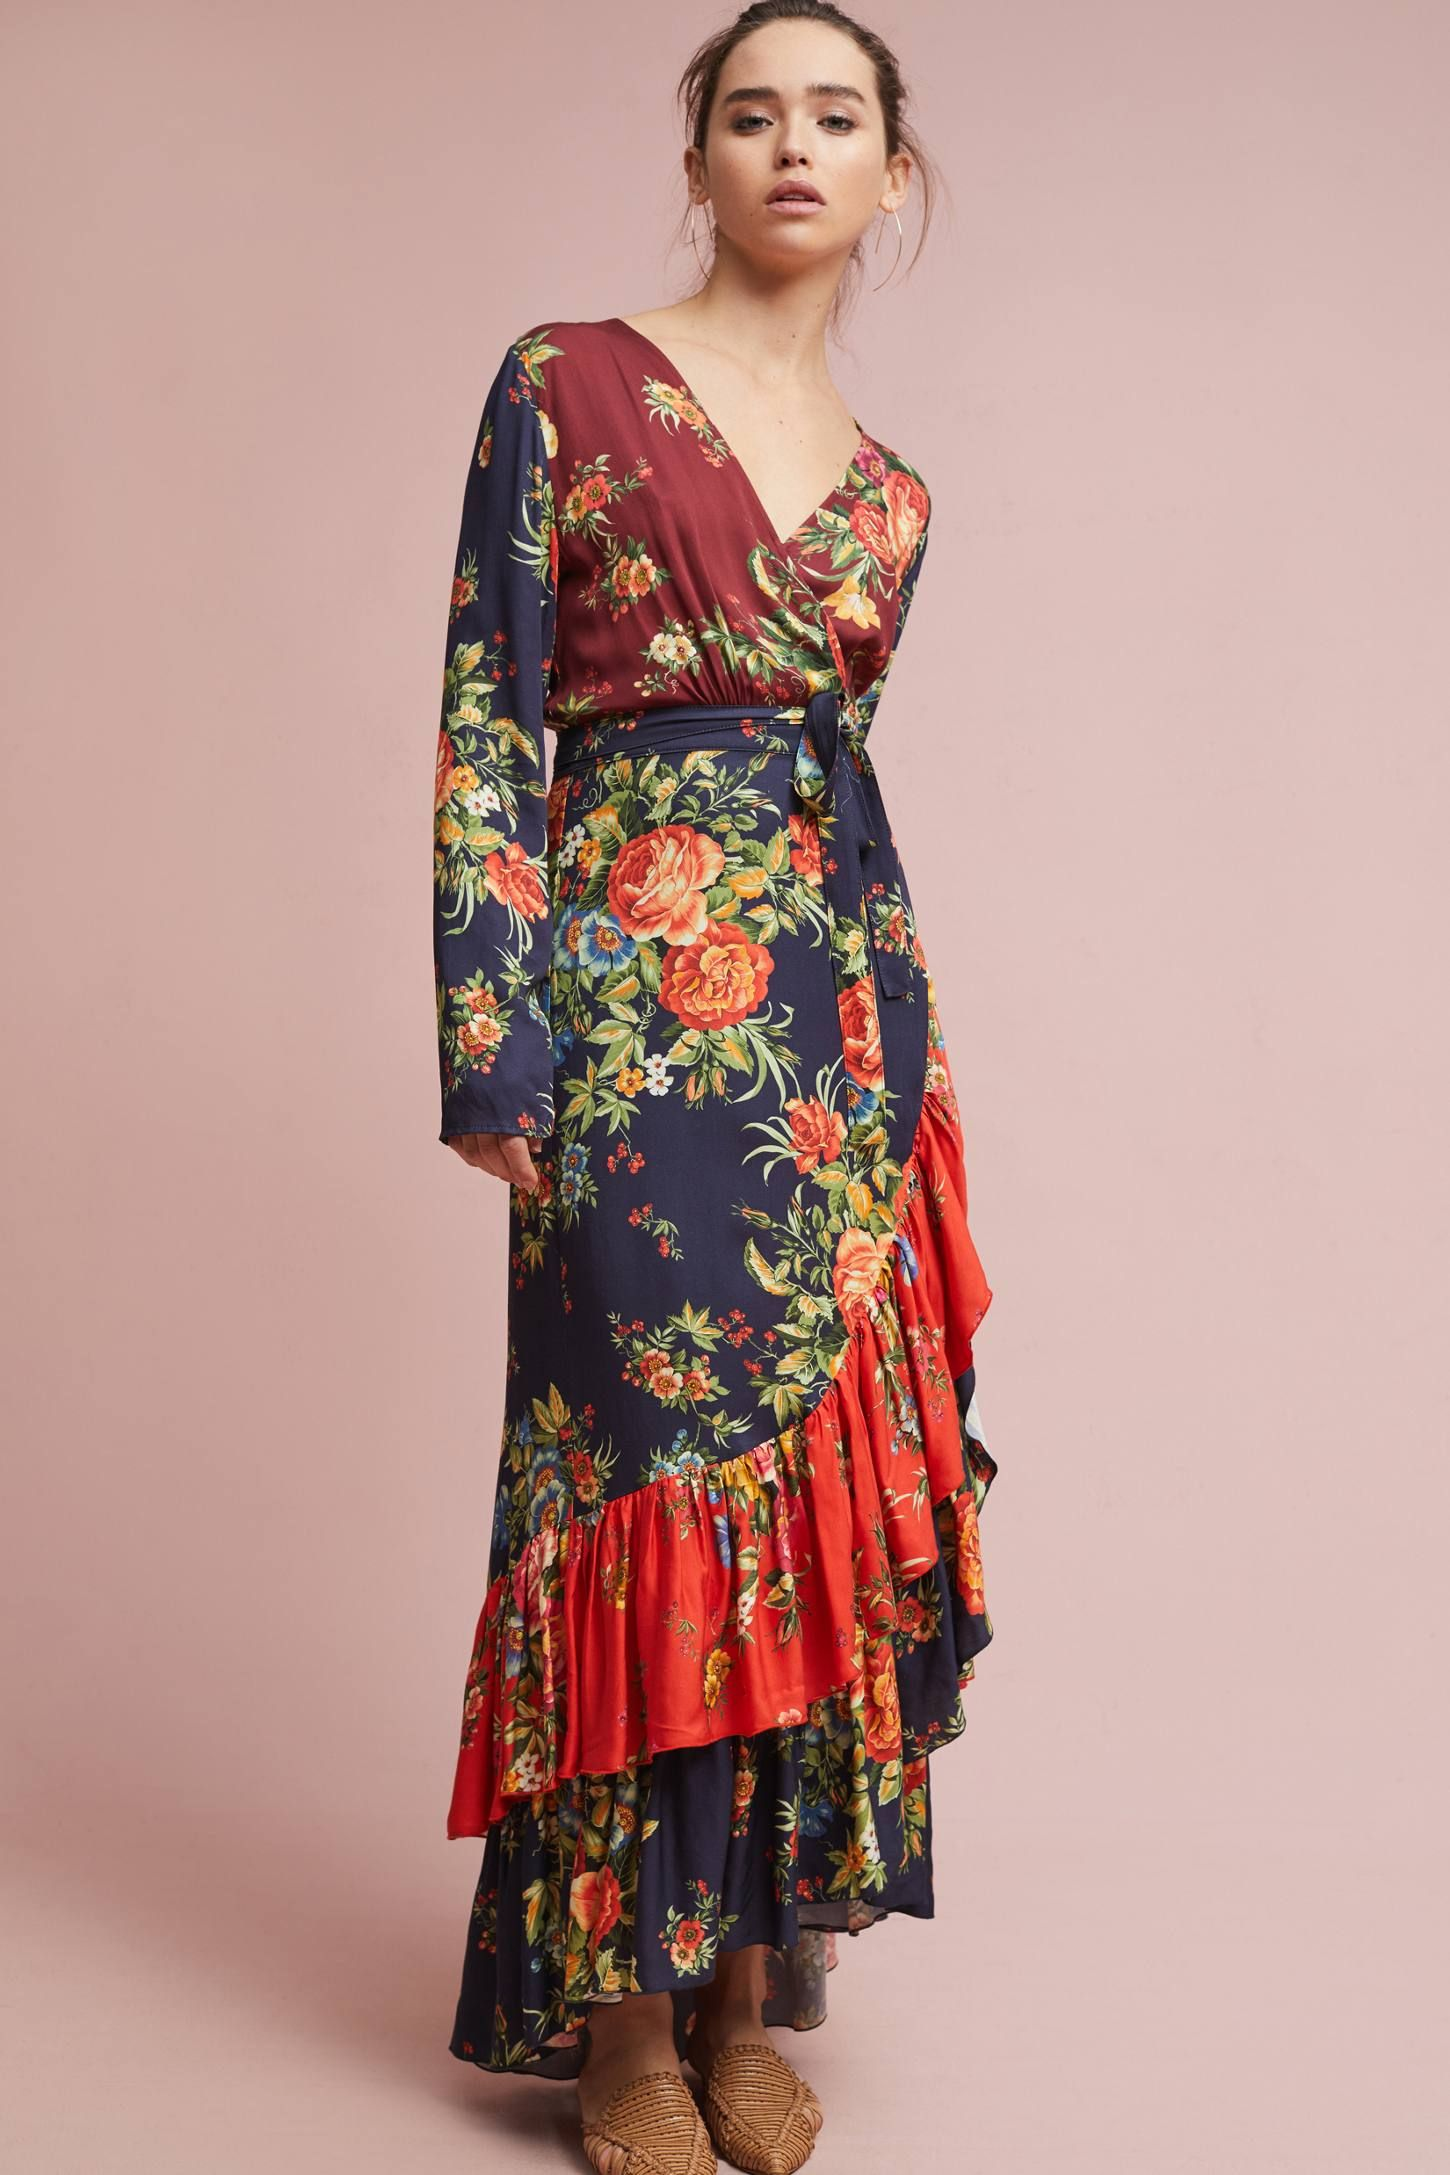 db61bbbf49ac3 Shop the Farm Rio Audrey Wrap Dress and more Anthropologie at Anthropologie  today. Read customer reviews, discover product details and more.